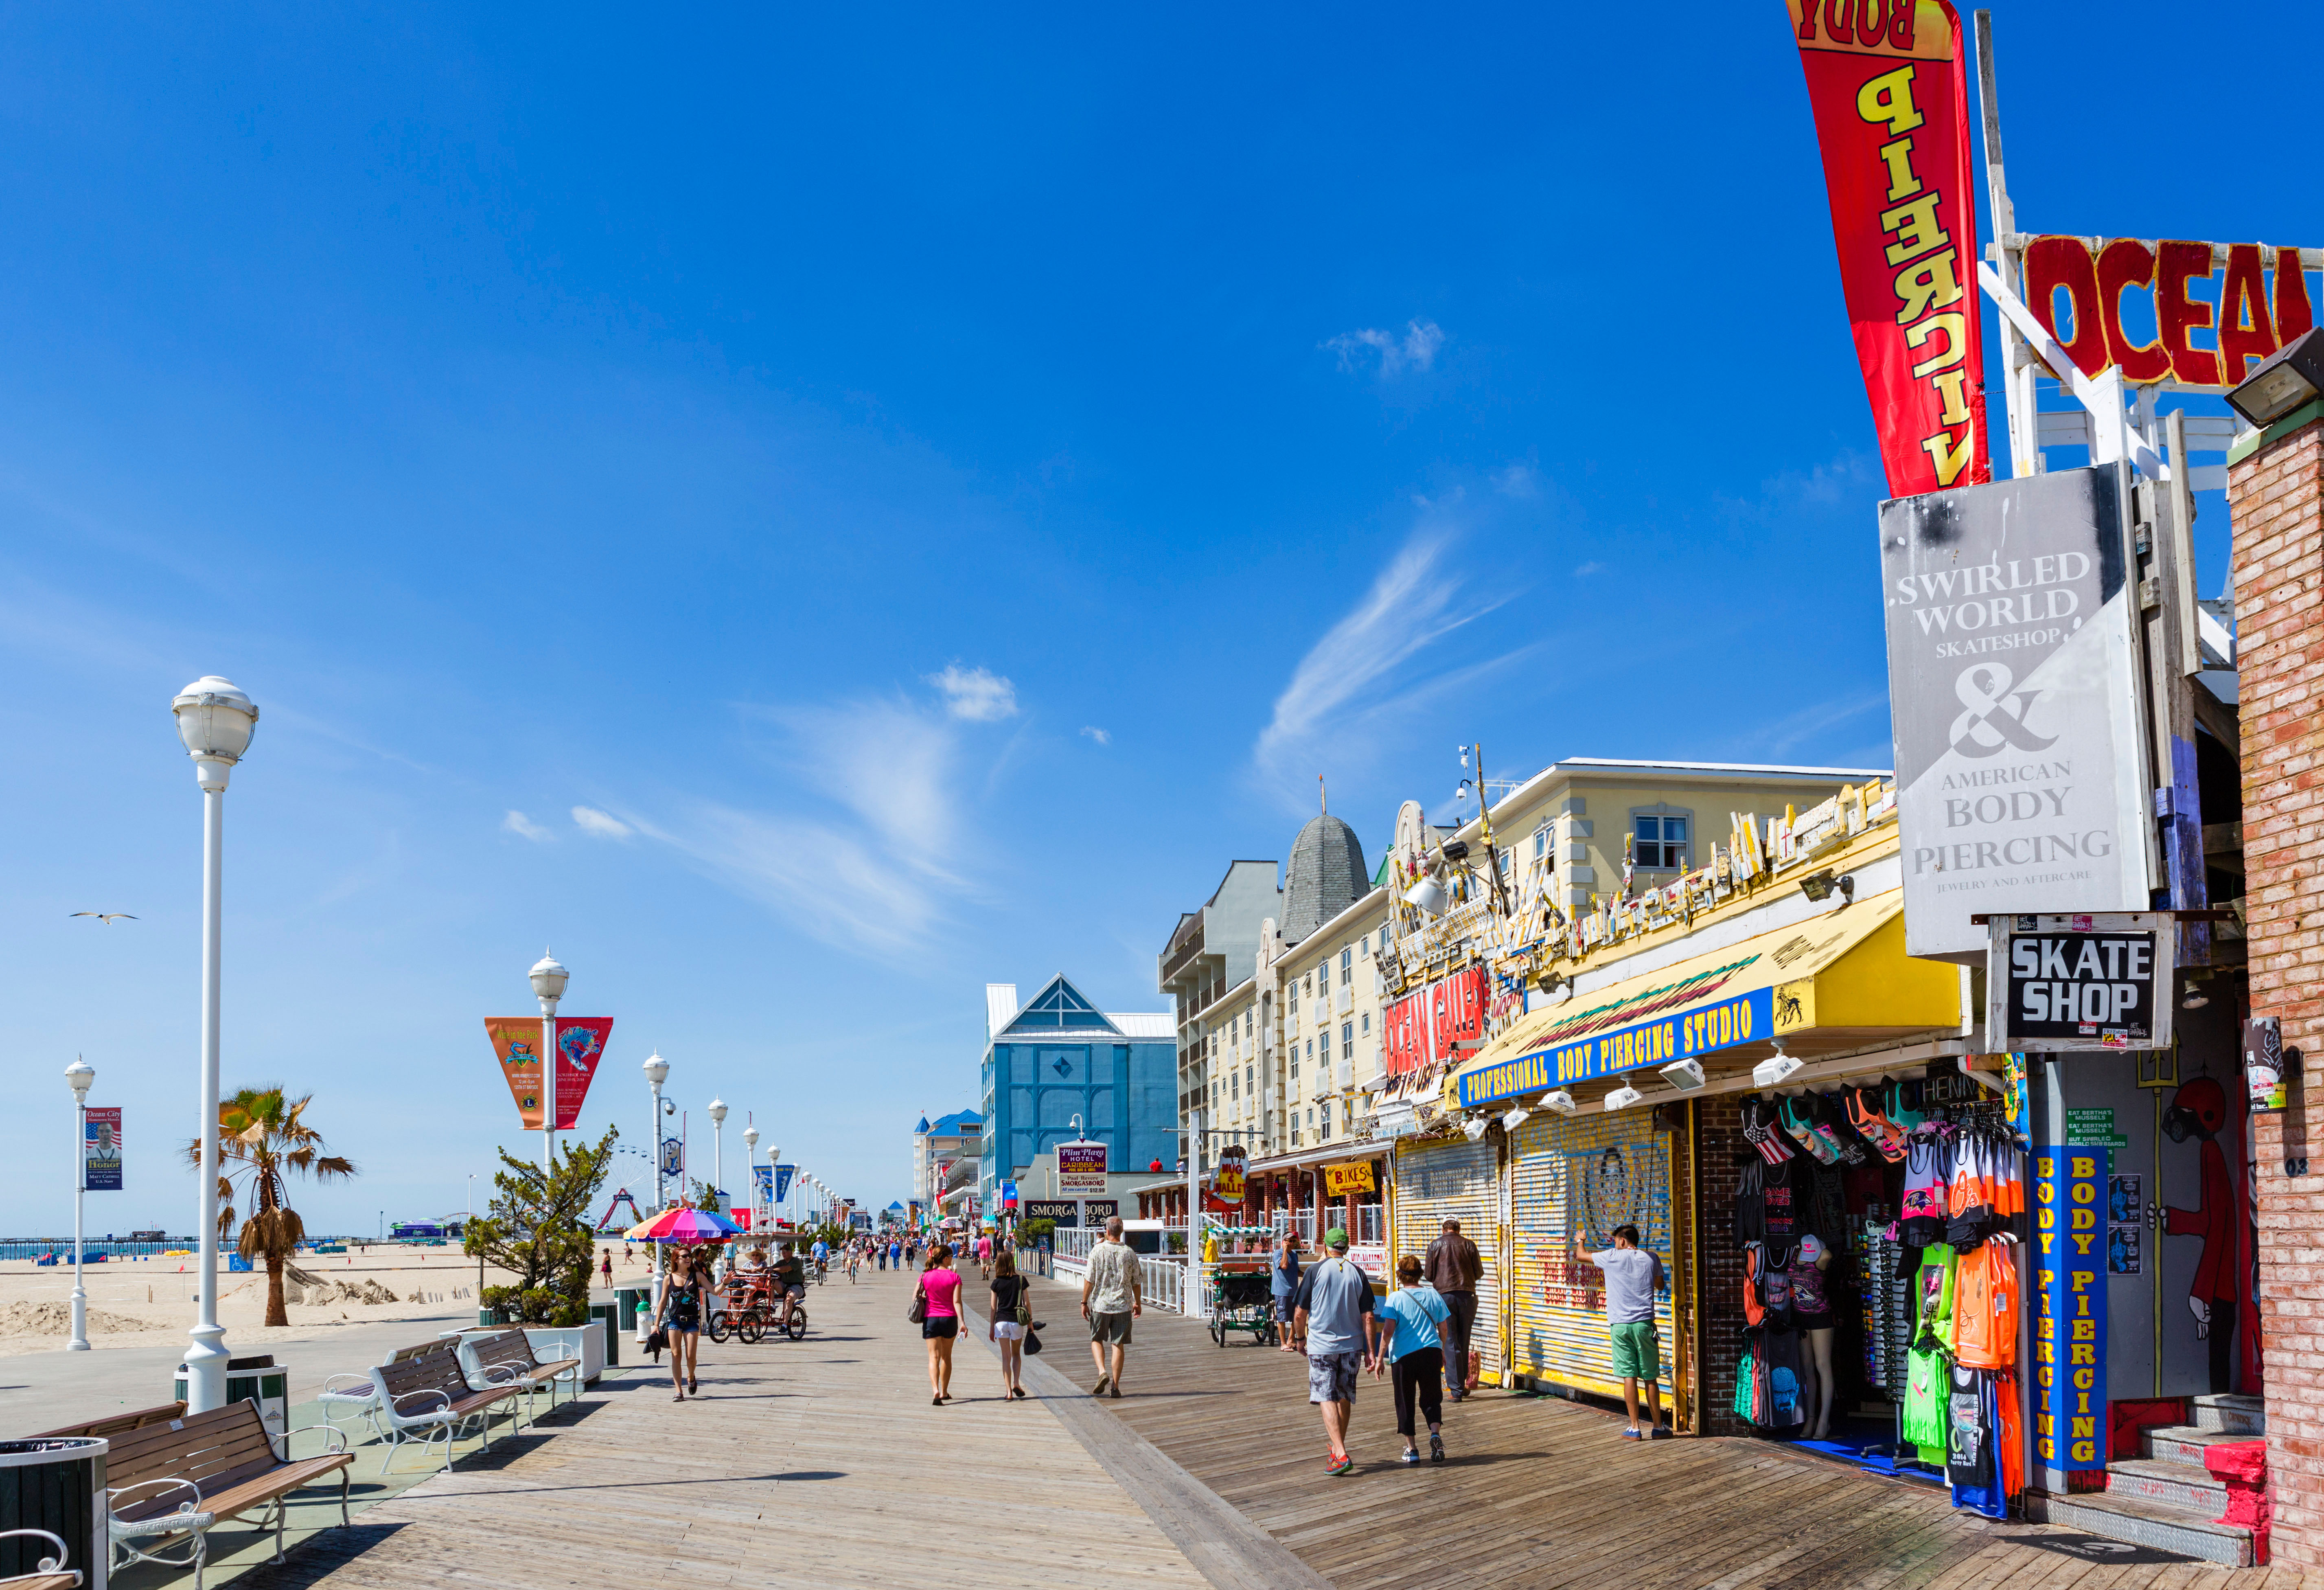 The boardwalk at Ocean City, Worcester County, Maryland, USA